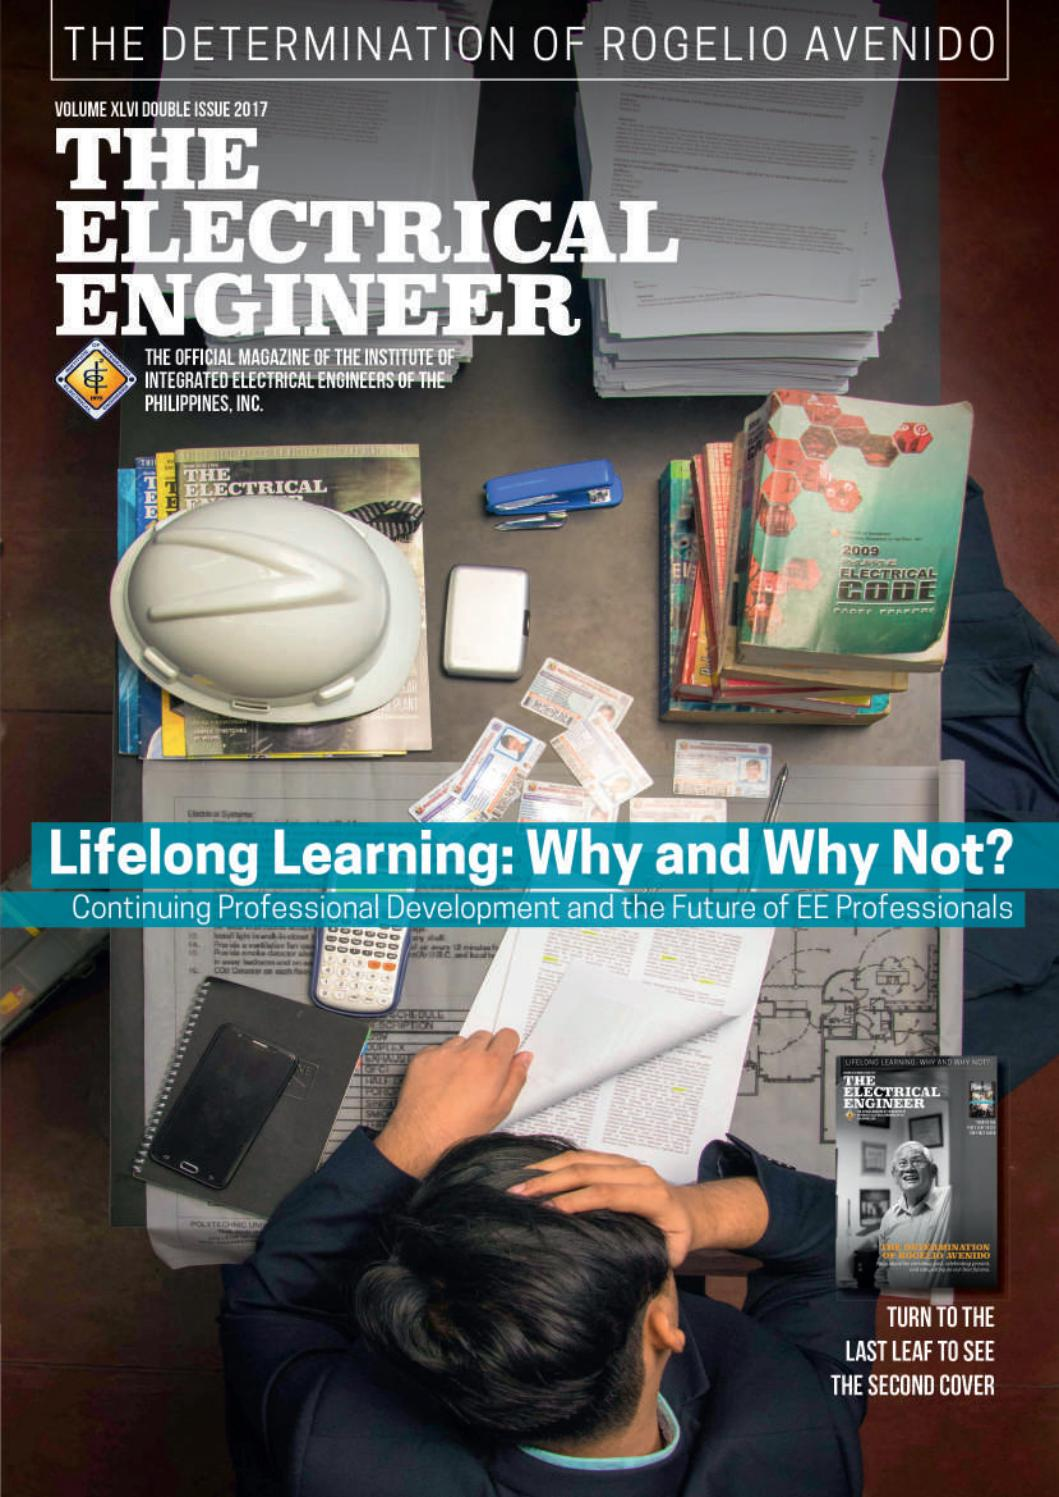 The Electrical Engineer Volume Xlvi Double Issue 2017 By Ee Magazine Circuit And Afci Diy Chatroom Home Improvement Forum Issuu